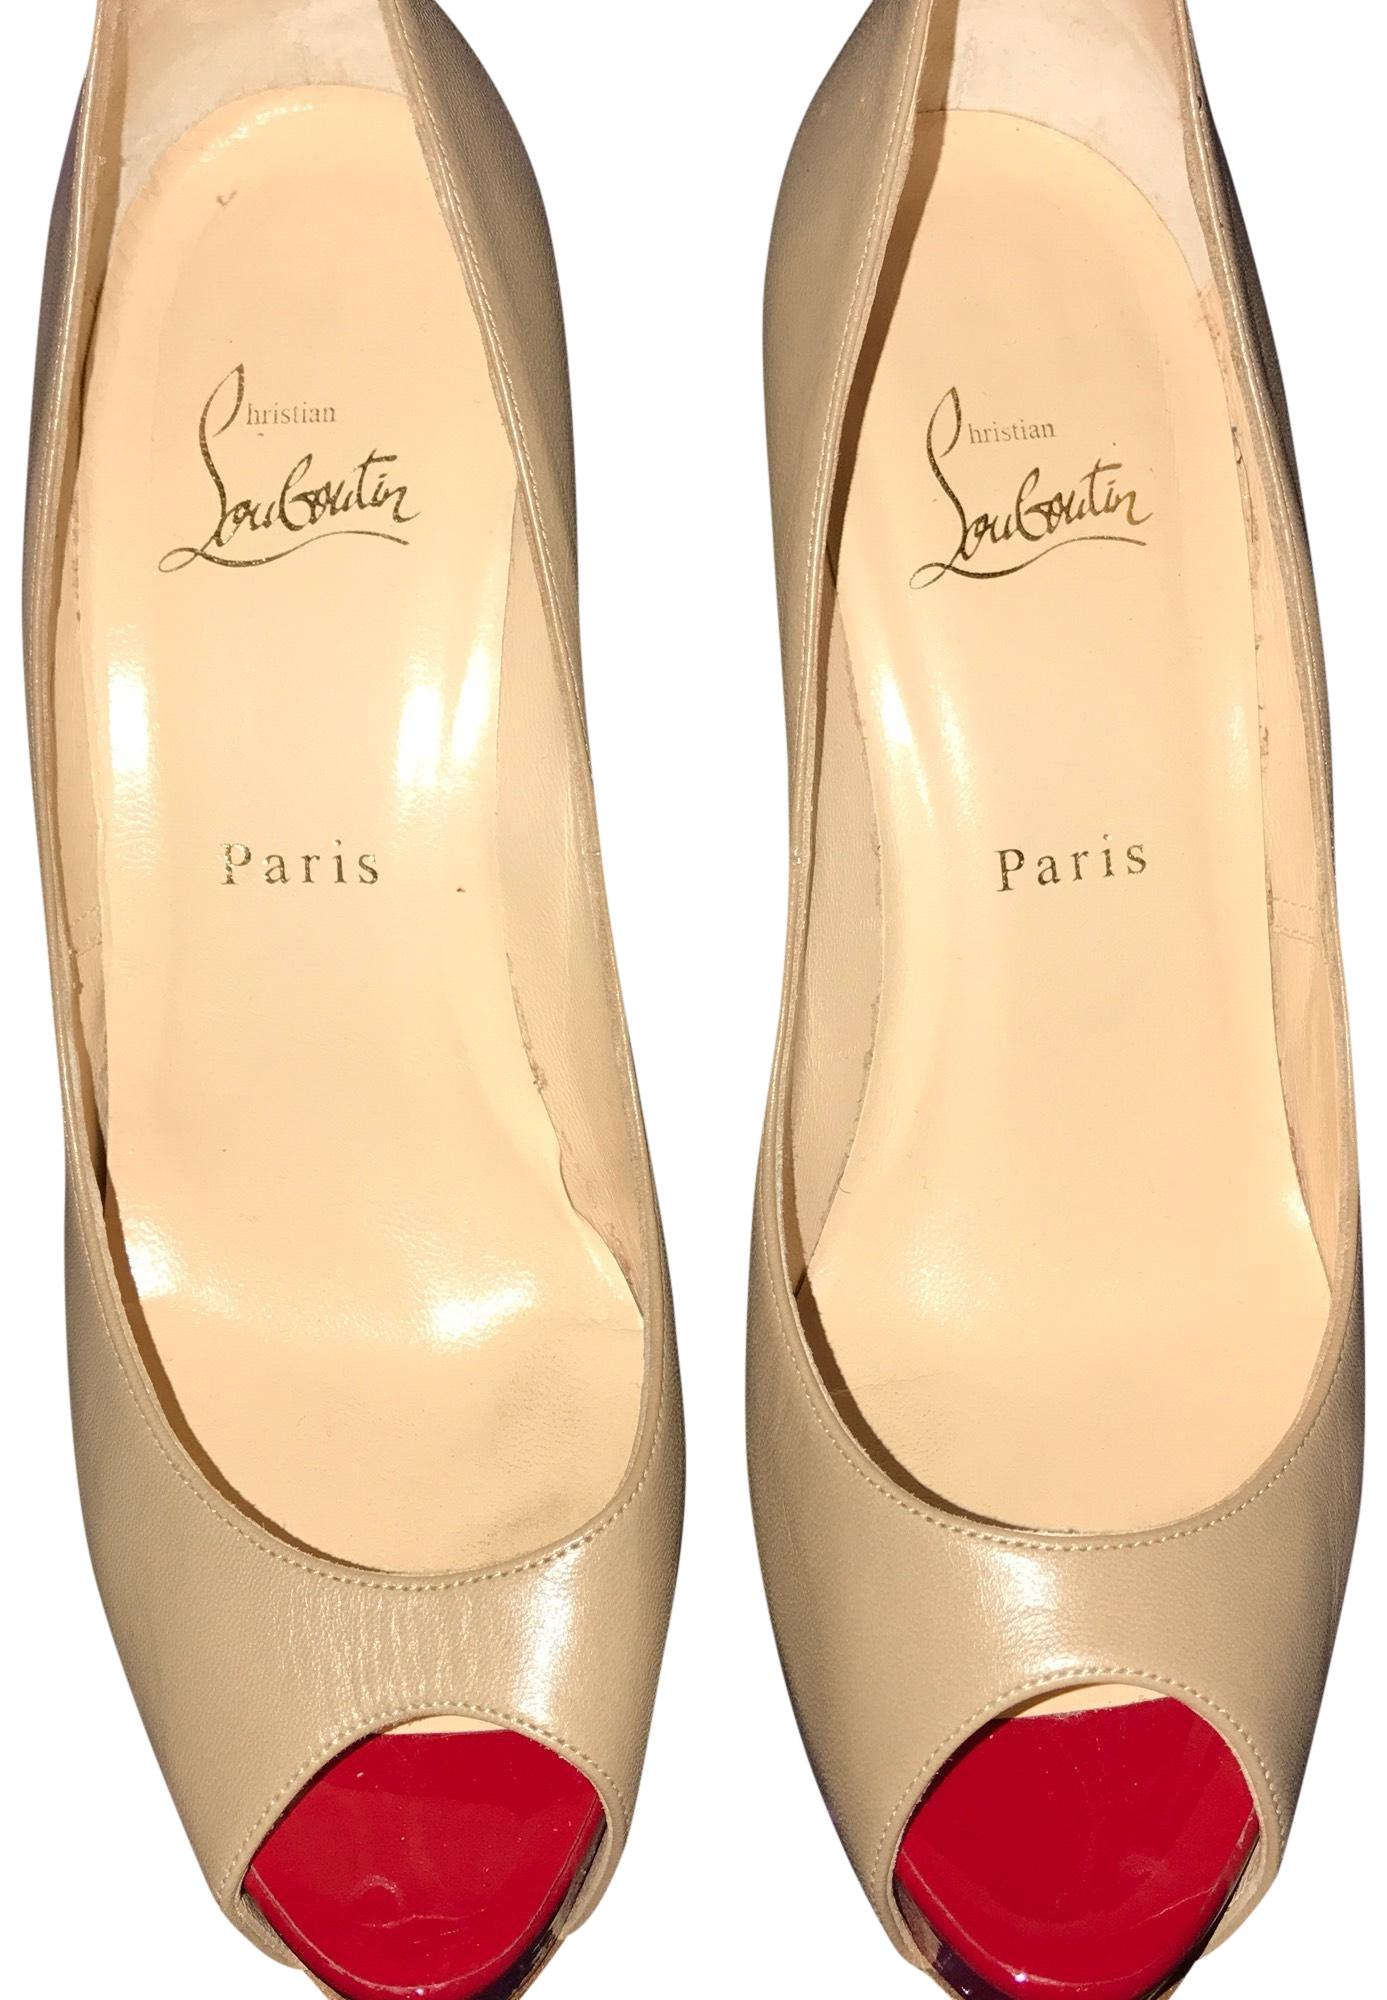 Christian Louboutin Beige 1131007 Vendome 120 Platforms Size US 9.5 Regular (M, B)